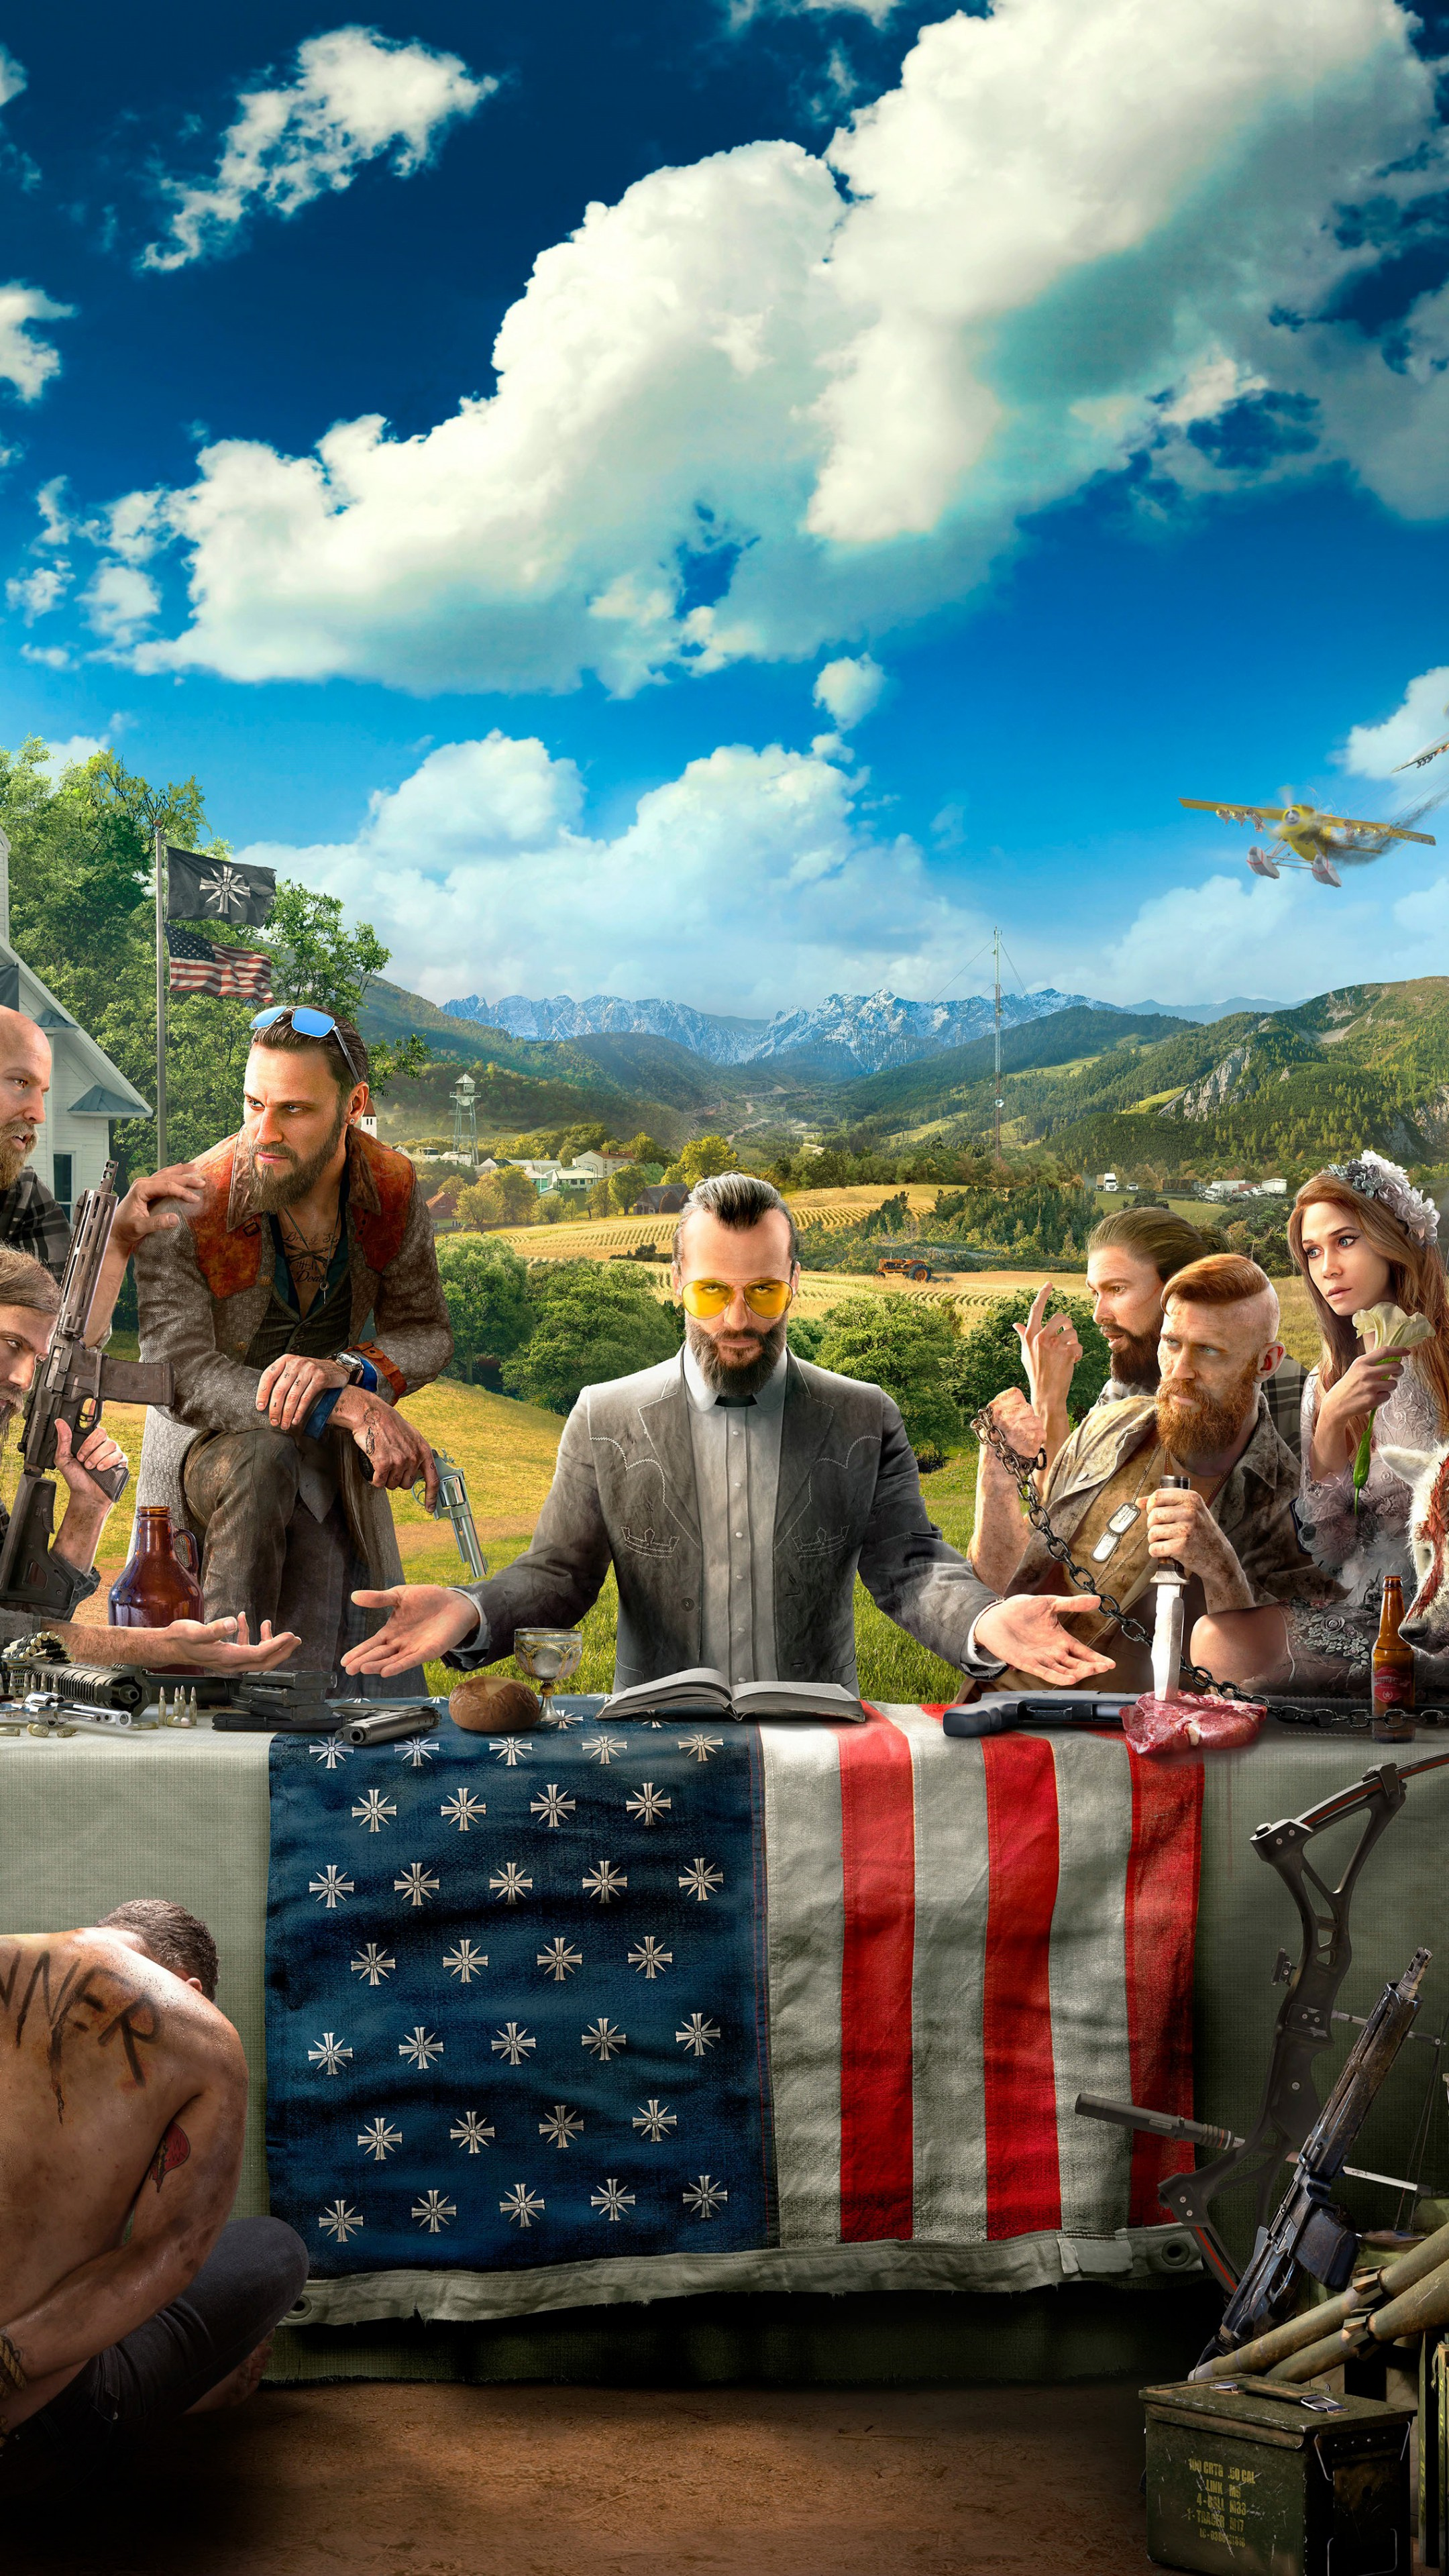 Wallpaper Far Cry 5 4k 8k Poster Art Games 13607